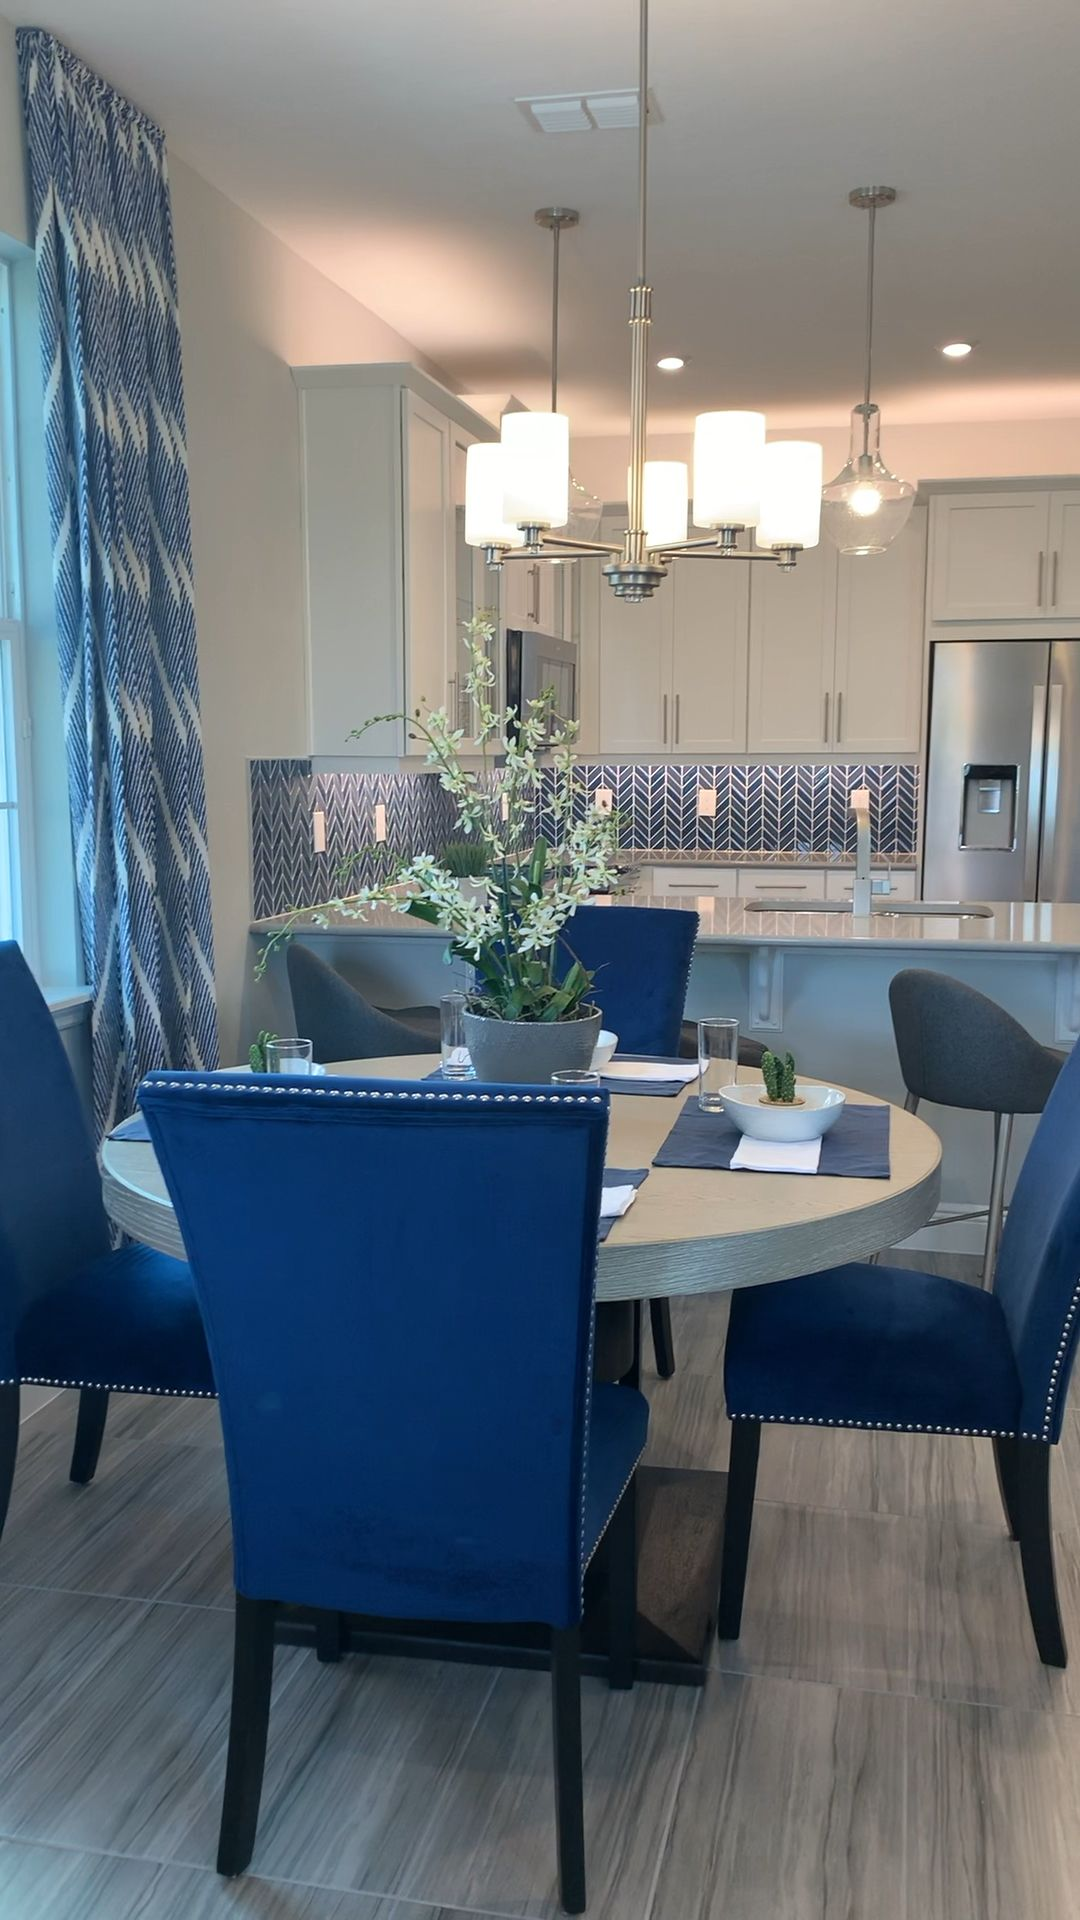 Looking for home Decor Inspiration? 💙 Layers of Blues in patterns and prints throughout this white kitchen open concept design.  Located in Windermere, FL ##FloridaInteriors #TownhomeLiving #bluedecor